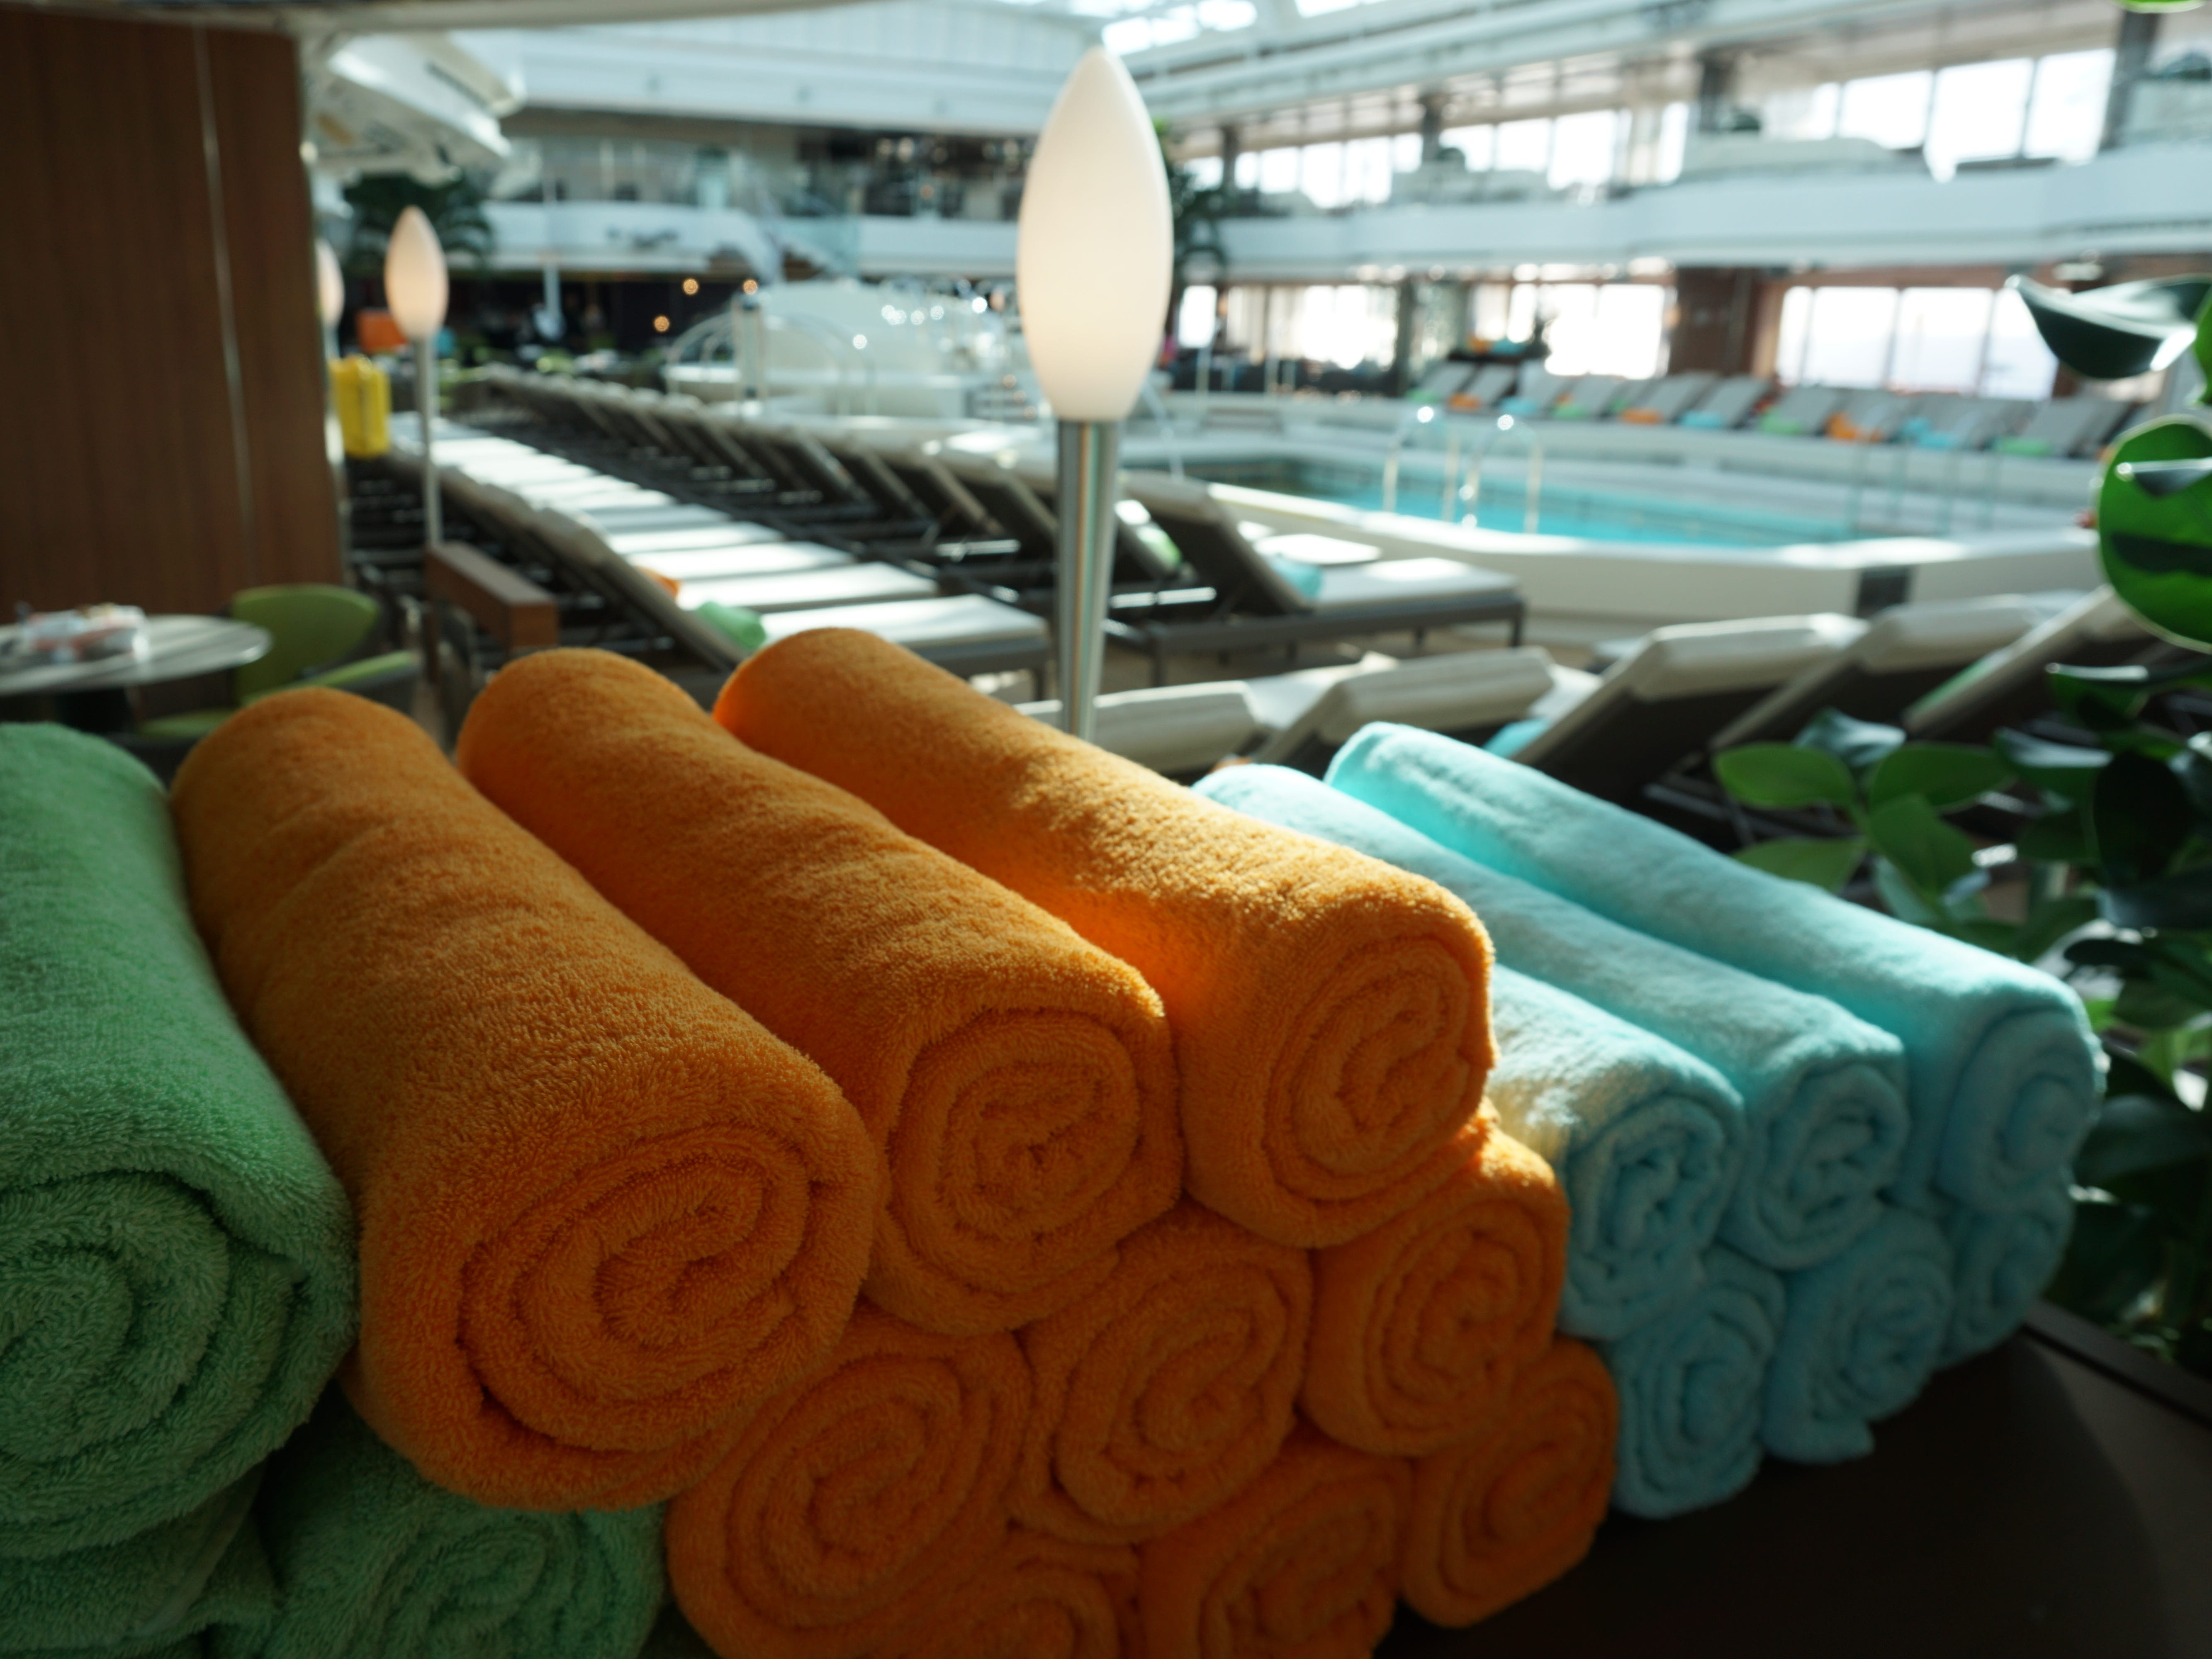 Colorful beach towels are provided at the midships Lido Pool on Deck 9.